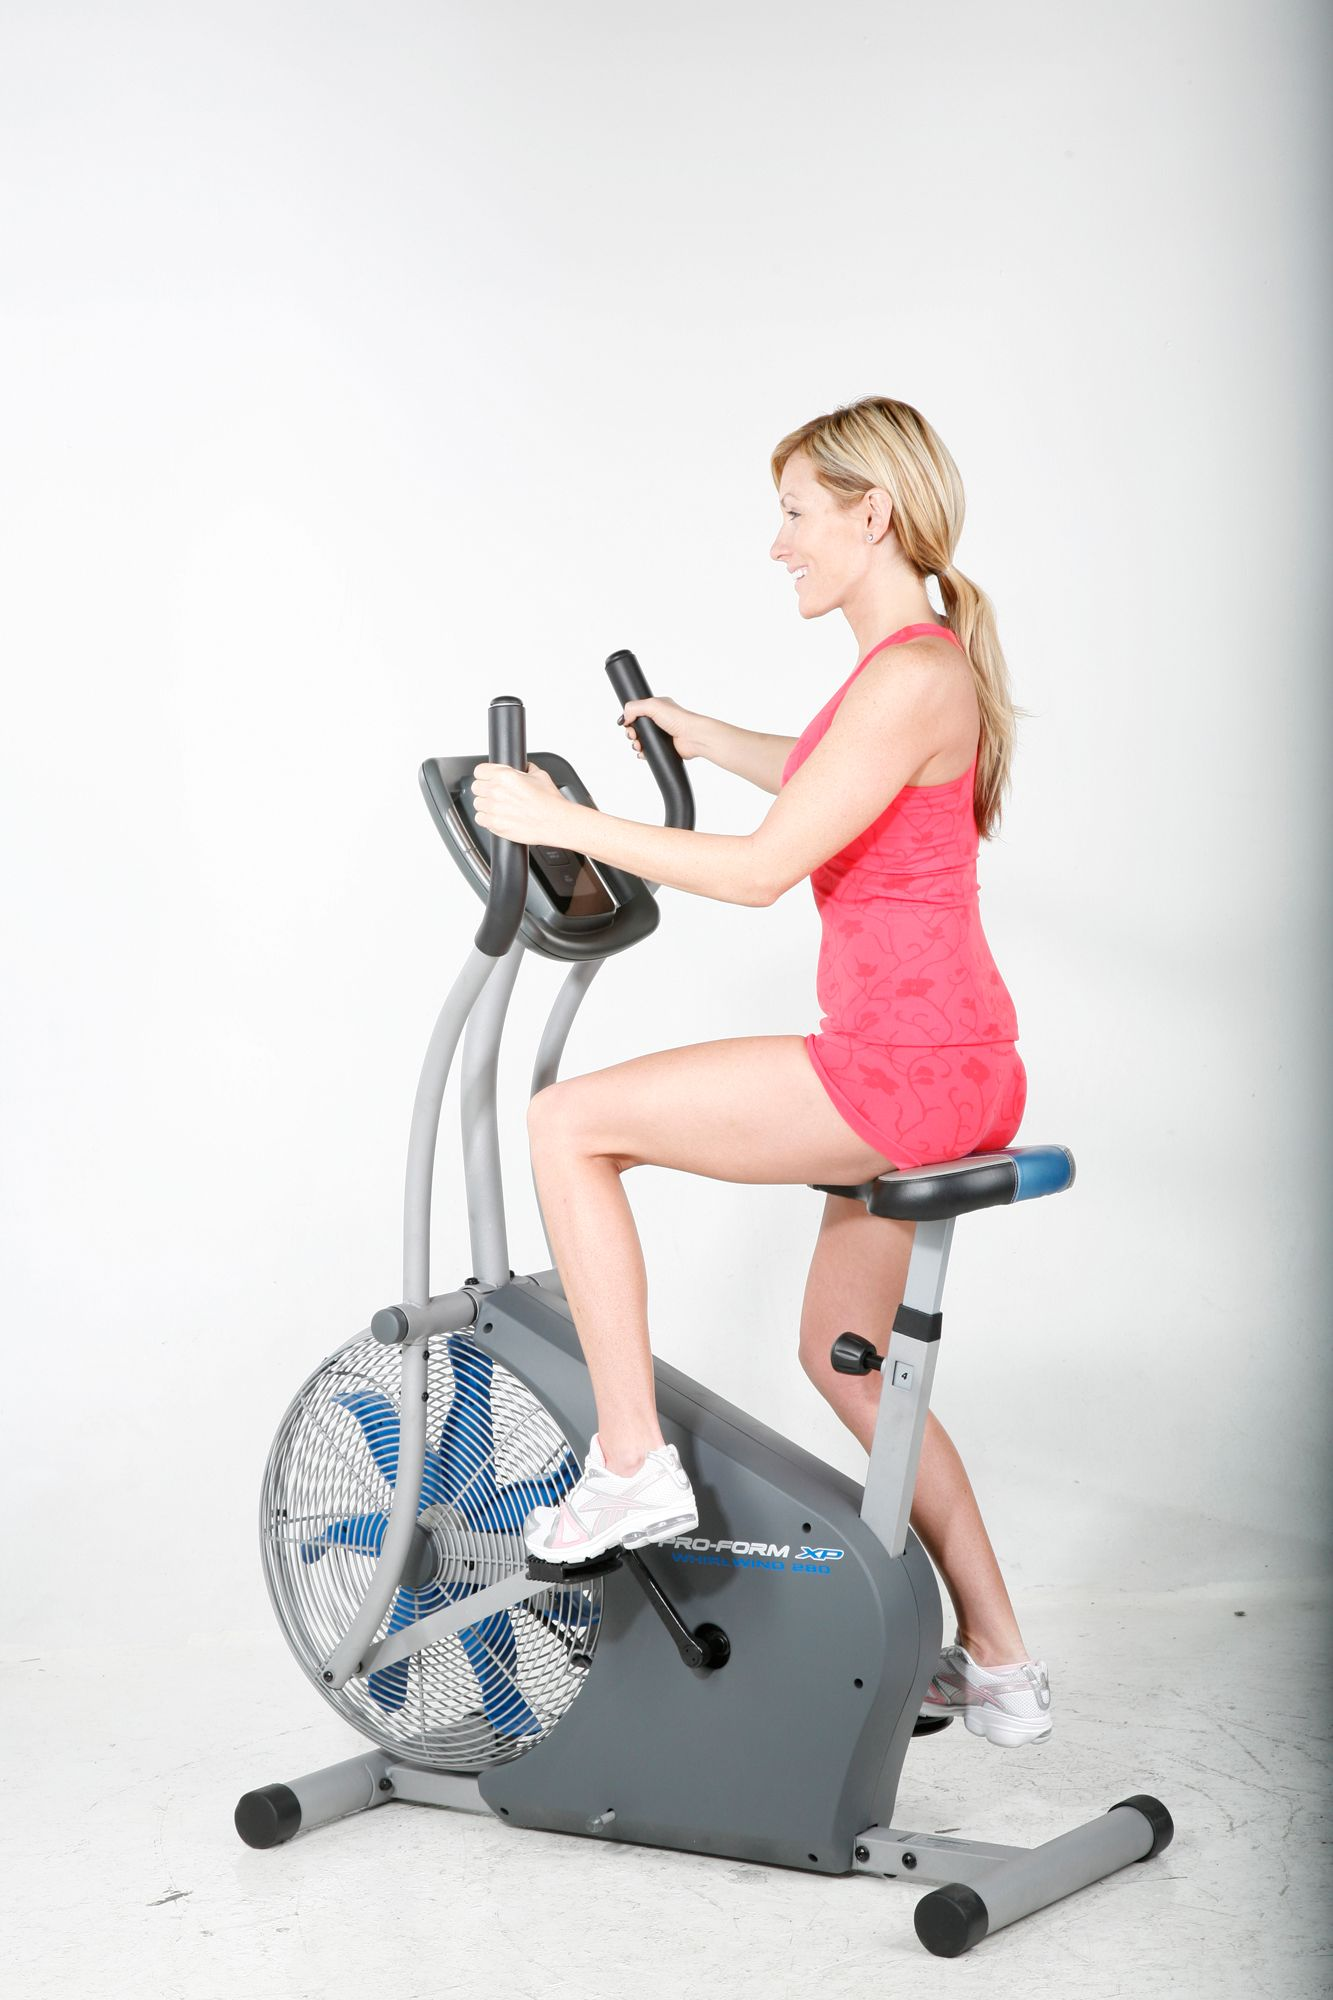 ProForm Whirlwind 280 Upright Exercise Bike